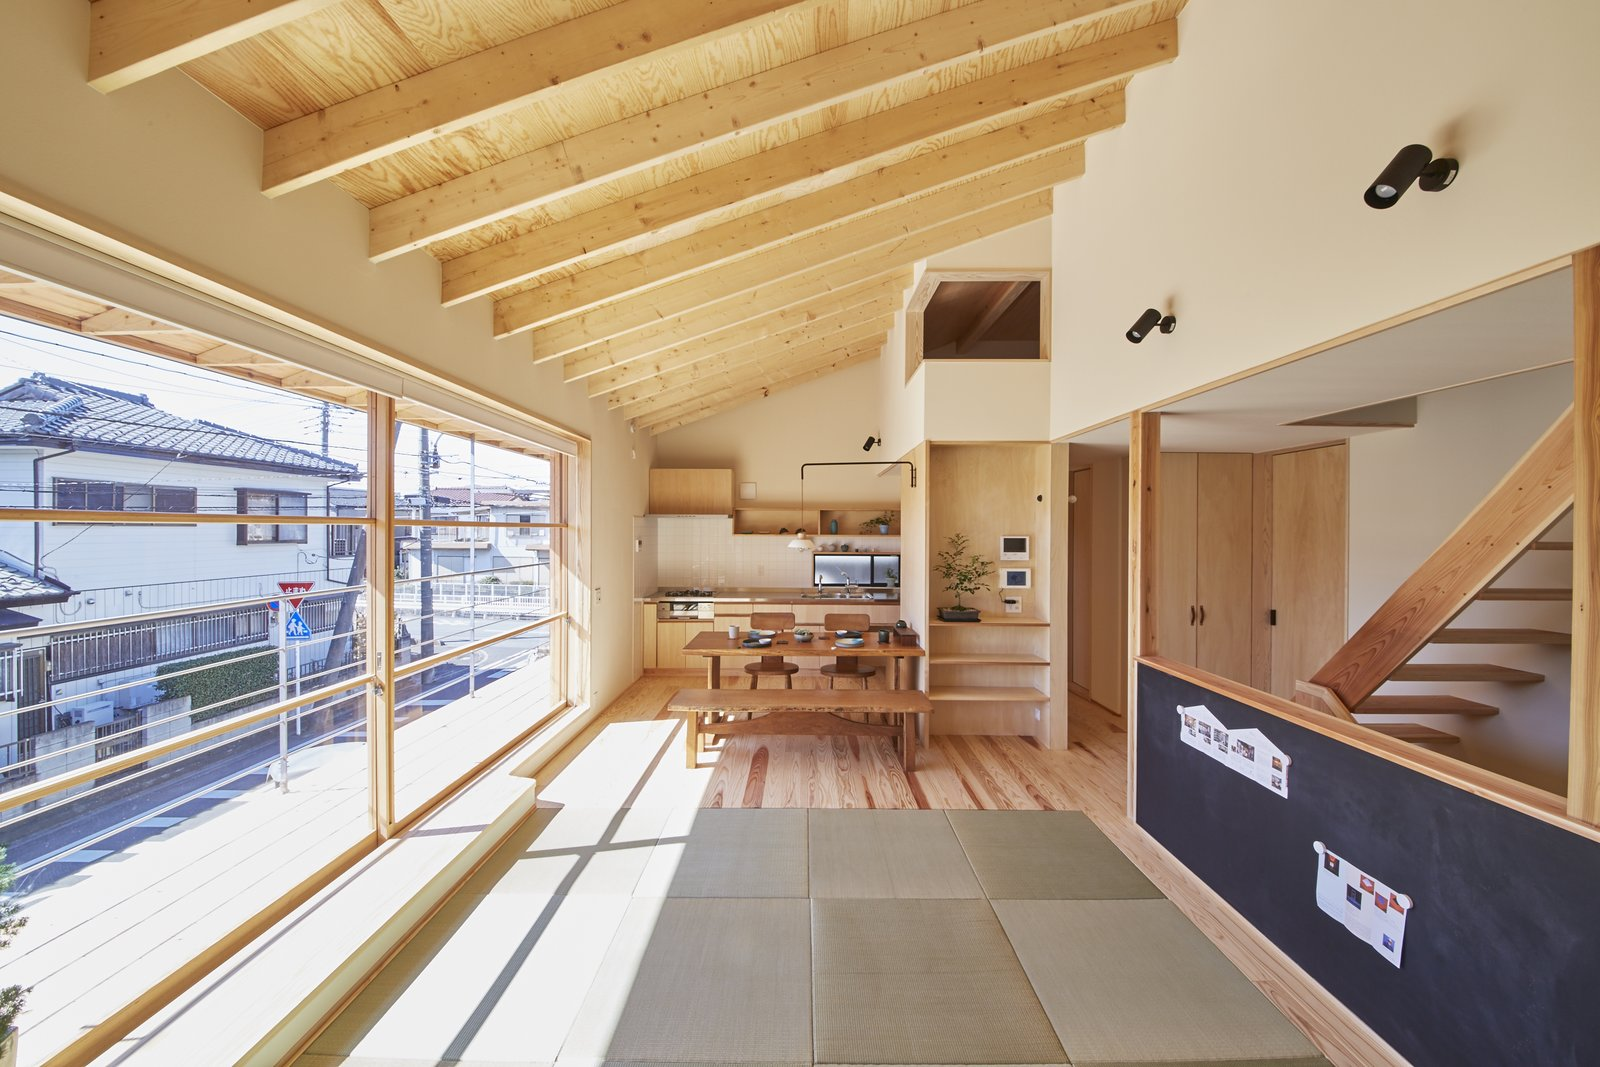 Living Room, Bench, Wall Lighting, and Light Hardwood Floor The 13-foot-wide sliding window provides abundant natural light year-round. The staircase was placed at the building's center to maximize openness and make space for the carport below. The blackboard is for the couple's young son, Takuma, to play with and practice writing.  Yanagisaki House by Caroline Wallis